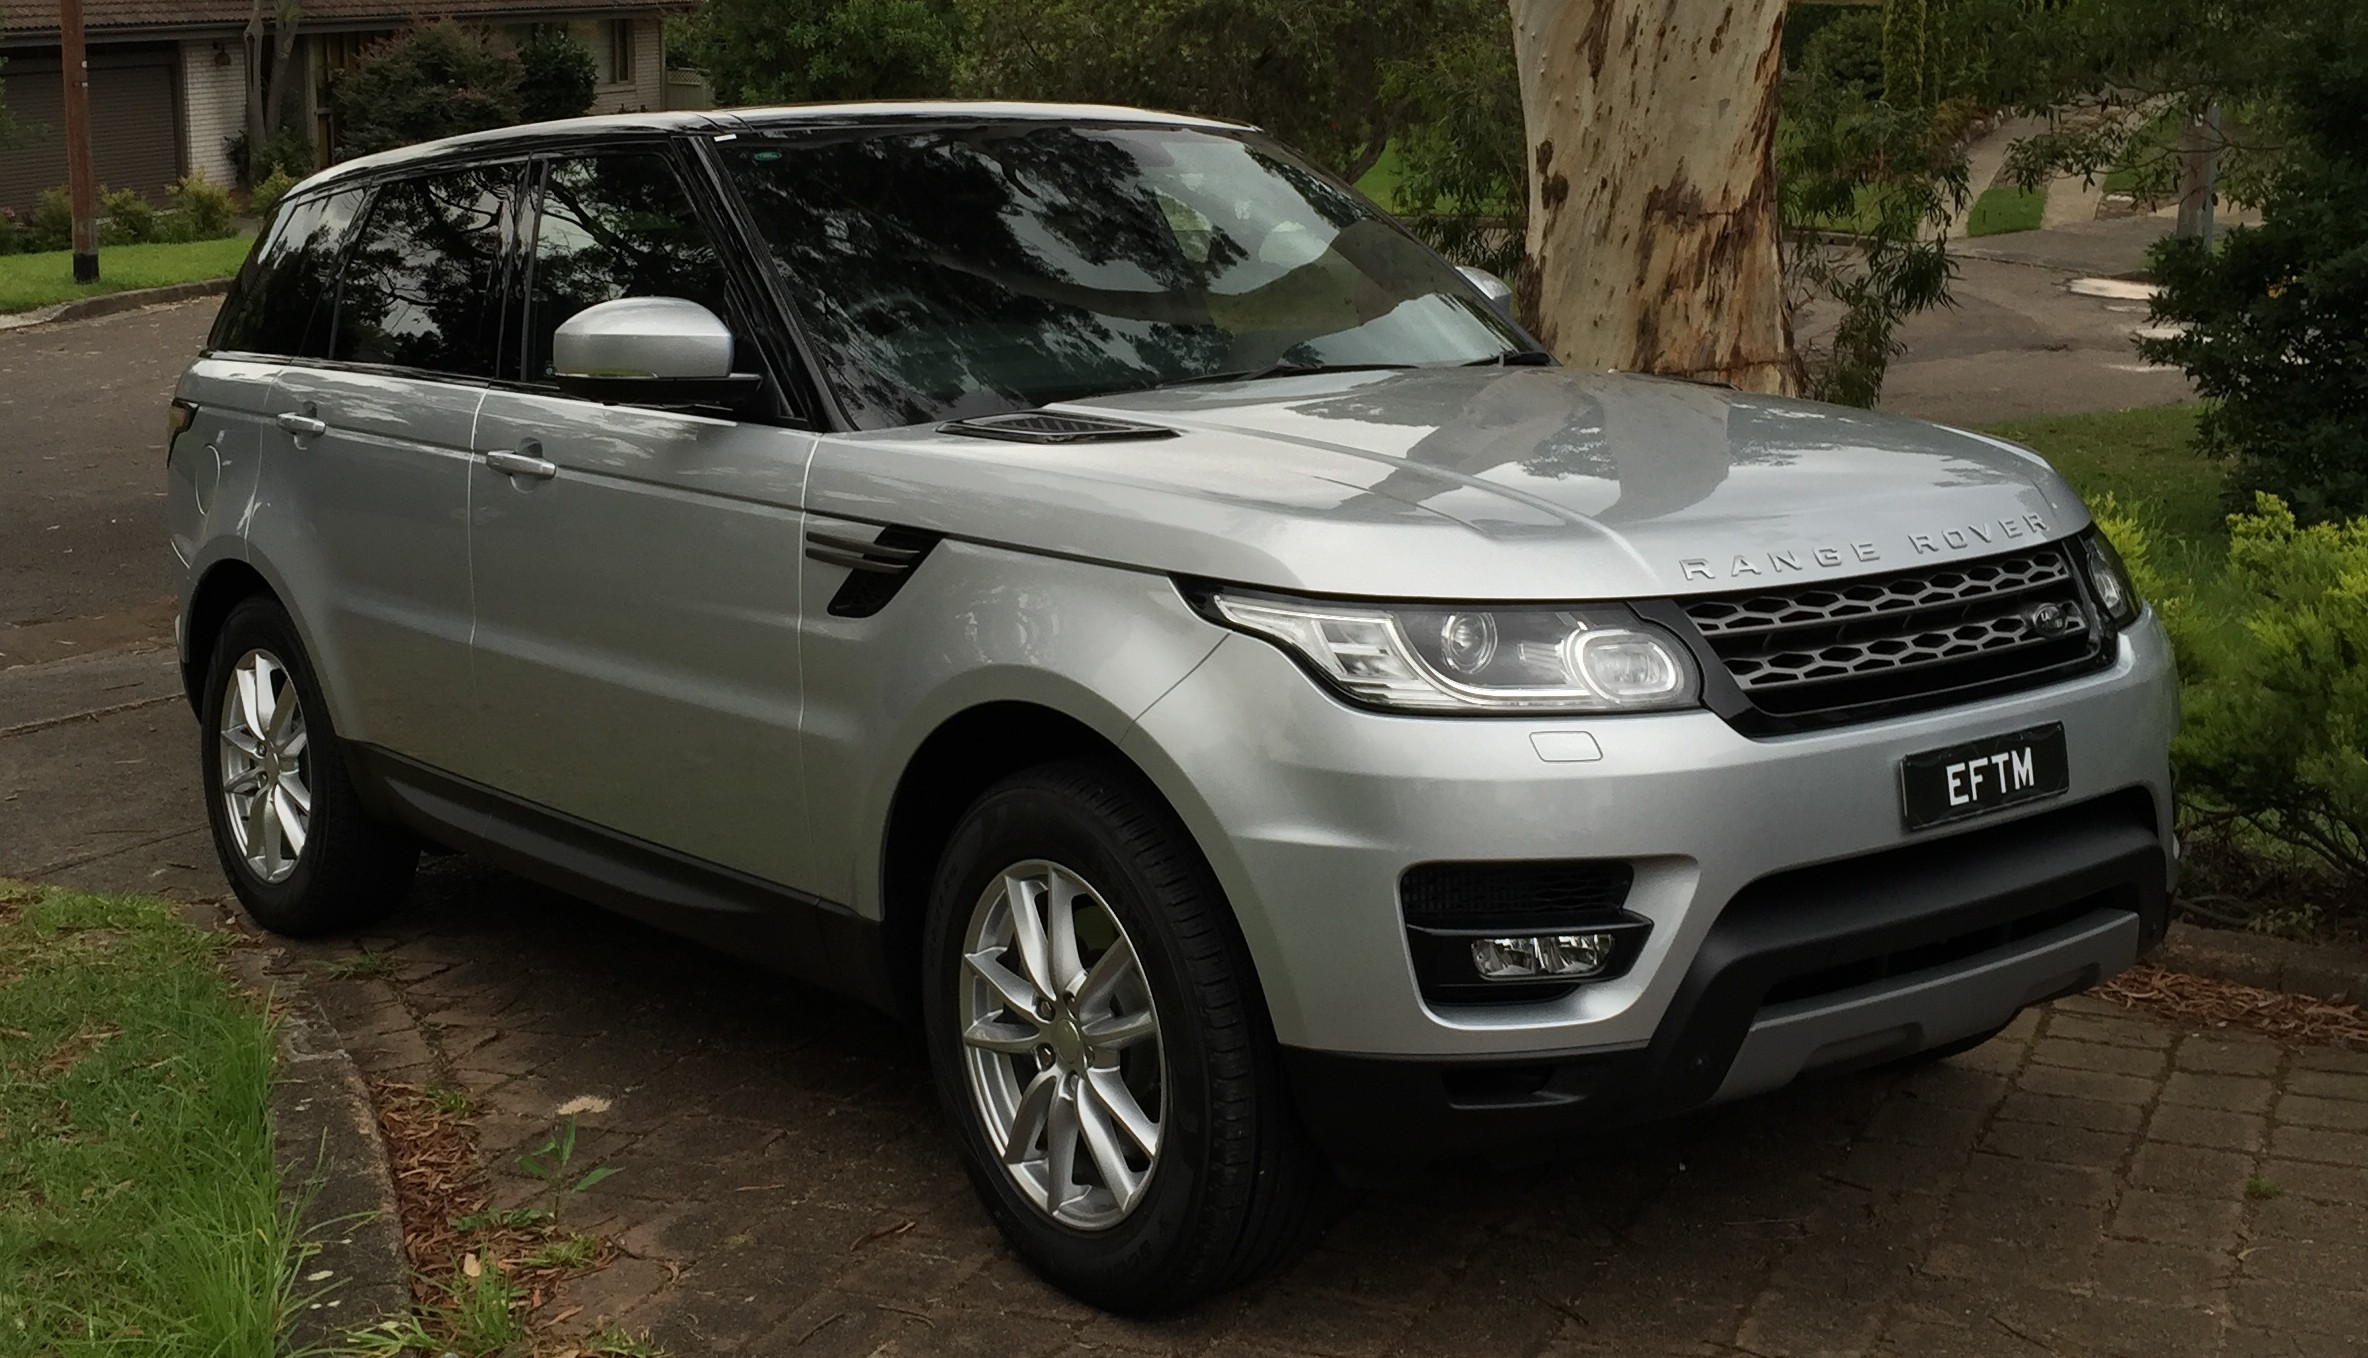 The garage range rover sport tdv6 se eftm for Garage land rover brest